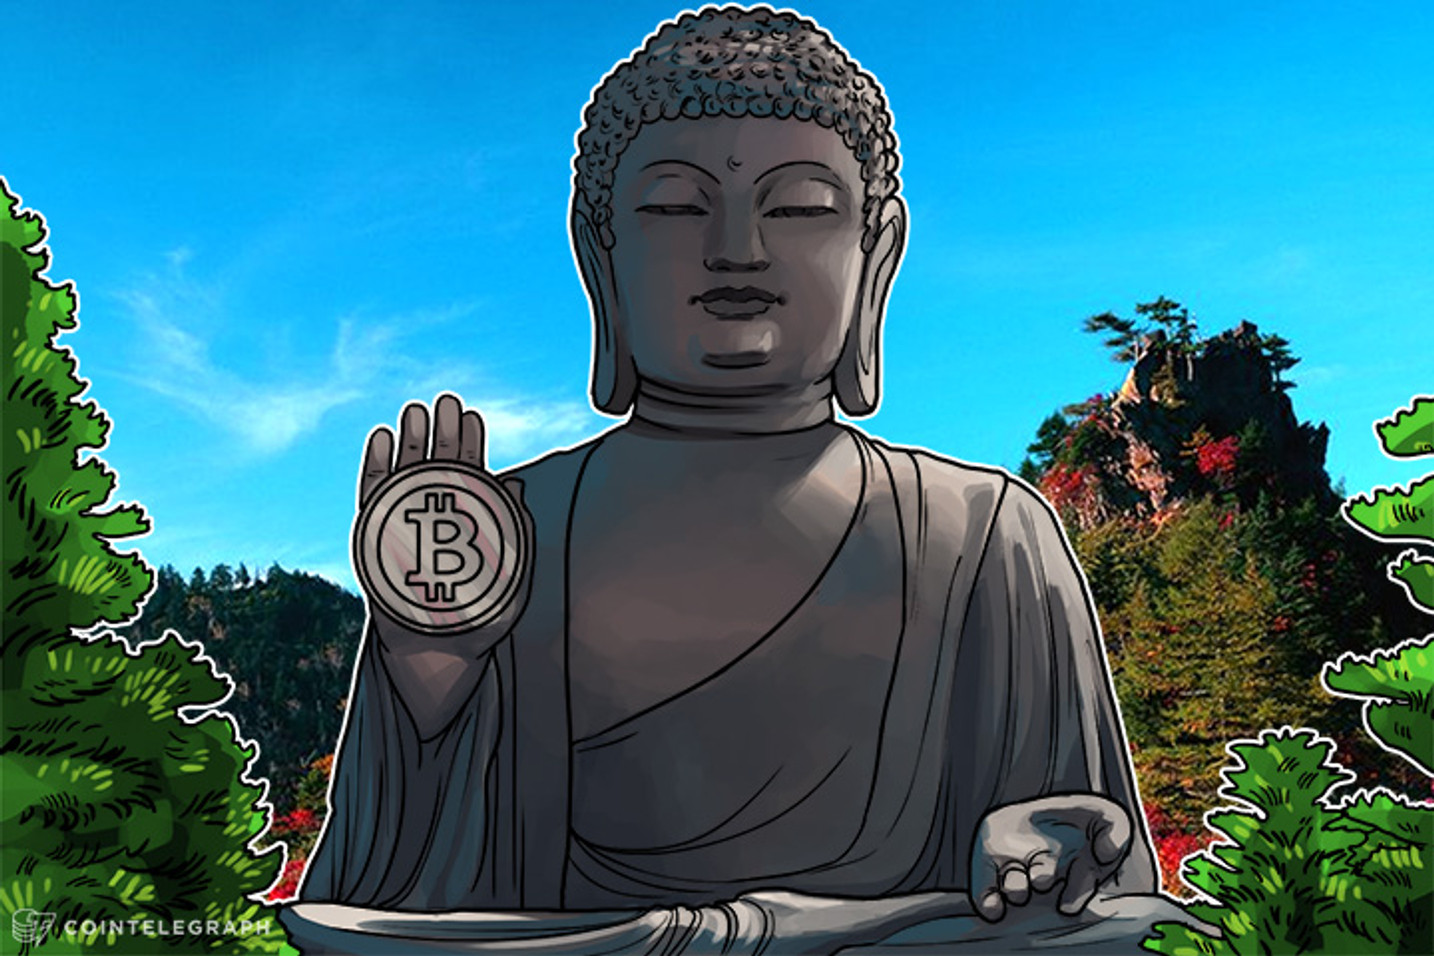 Bitcoin Demand Increase in Asia Driven by Remittances